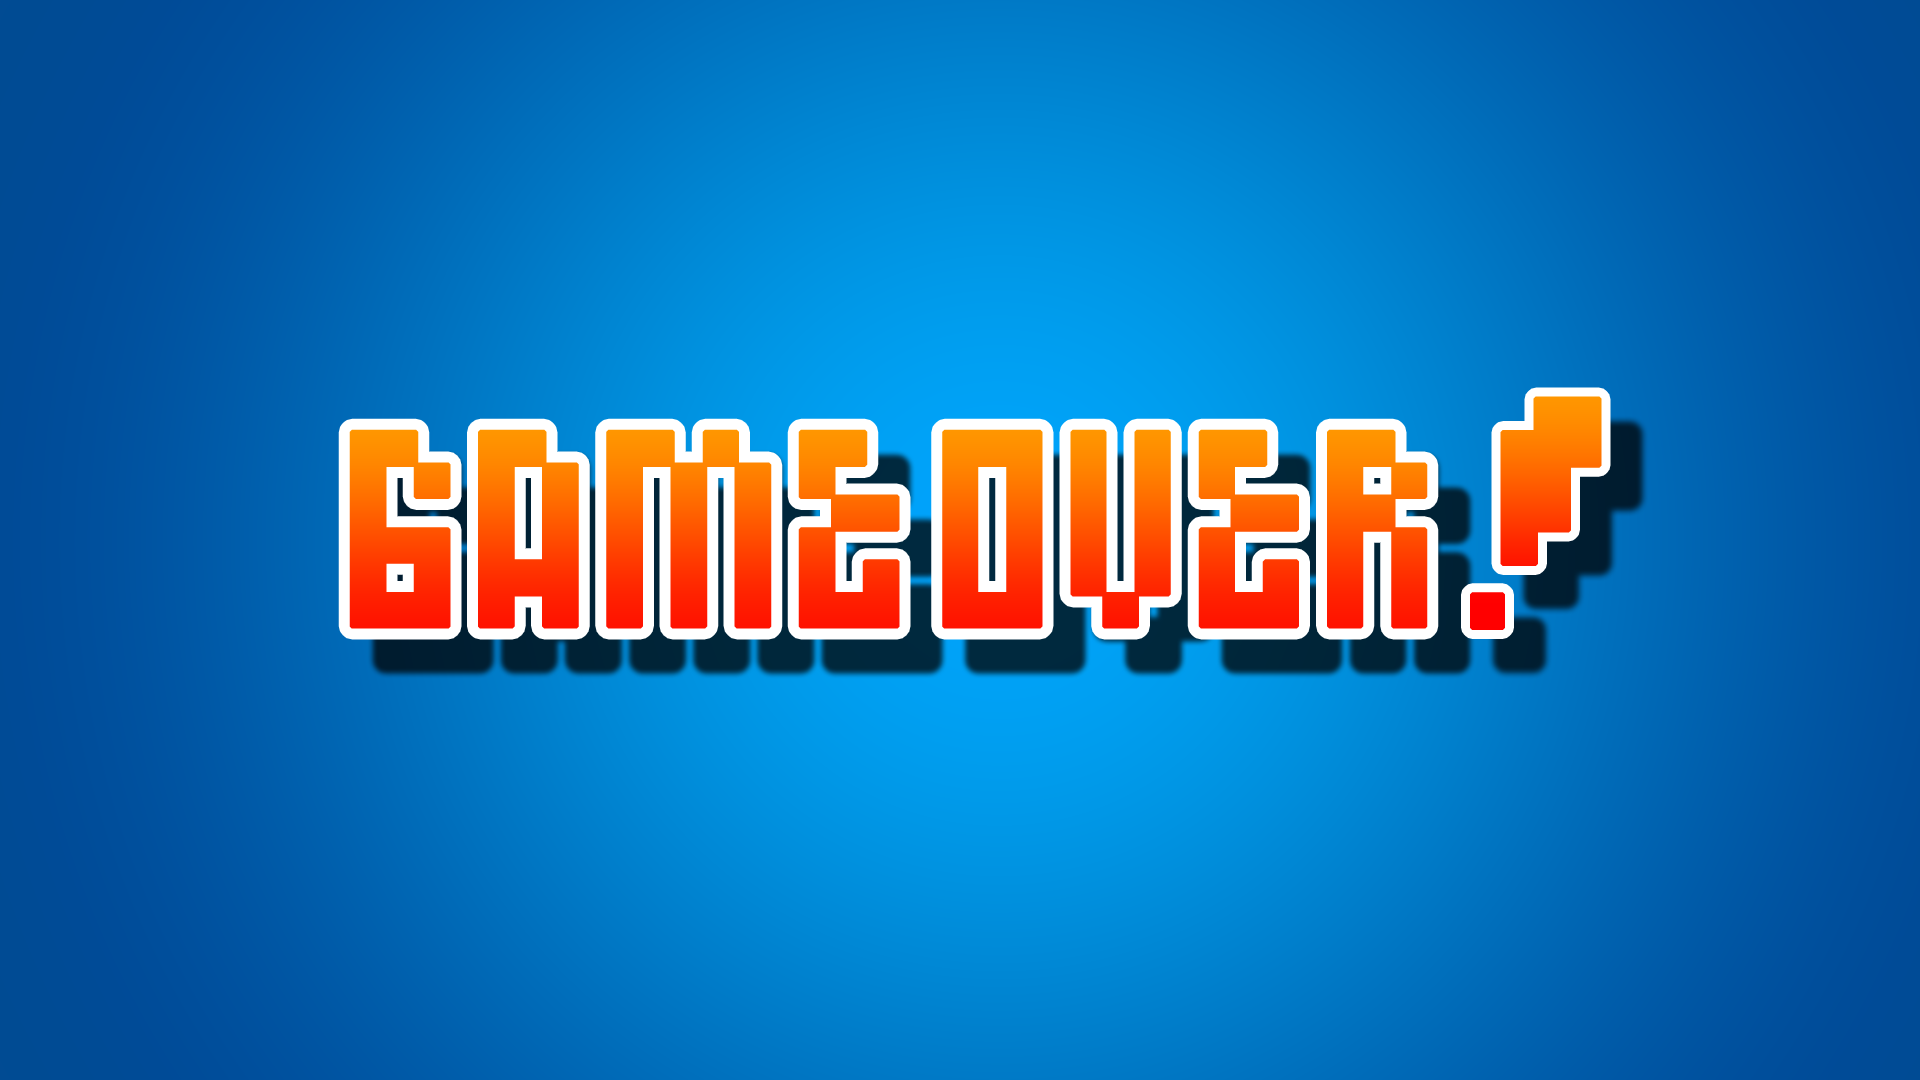 Game Over (1440P Resolution). Home · Games · Game Over · 2560x1440